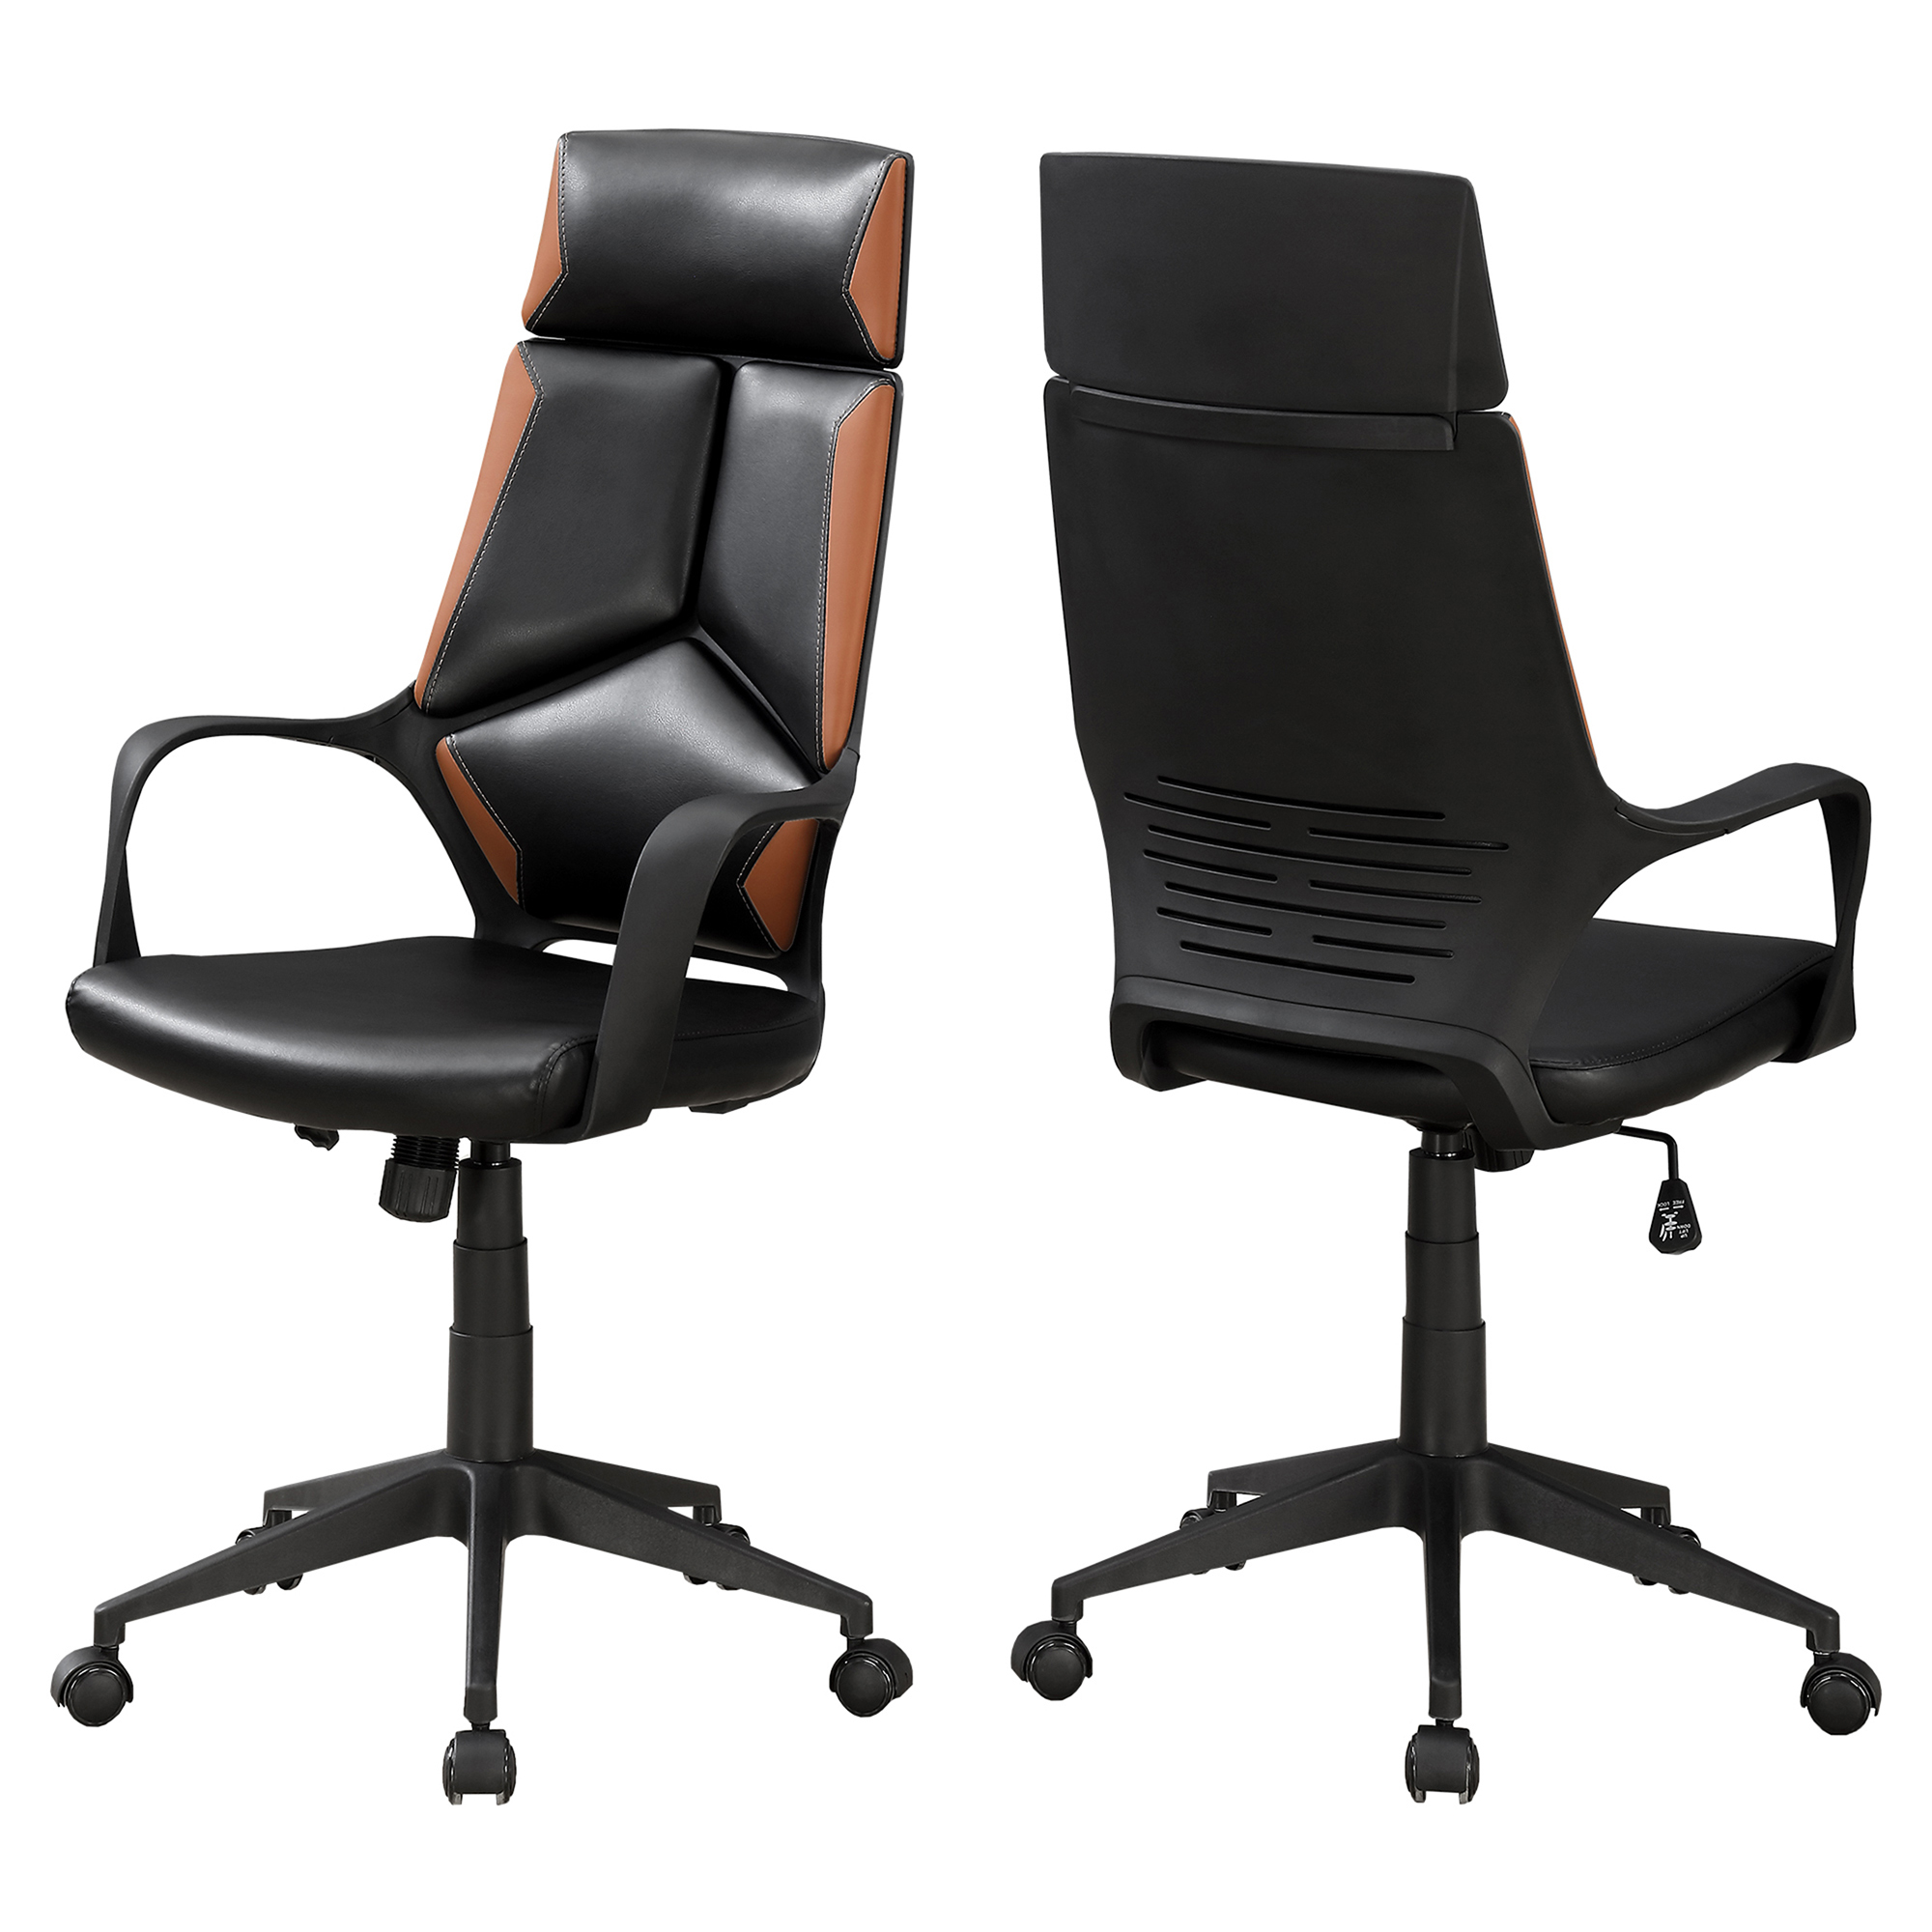 OFFICE CHAIR - BLACK / BROWN LEATHER-LOOK / EXECUTIVE